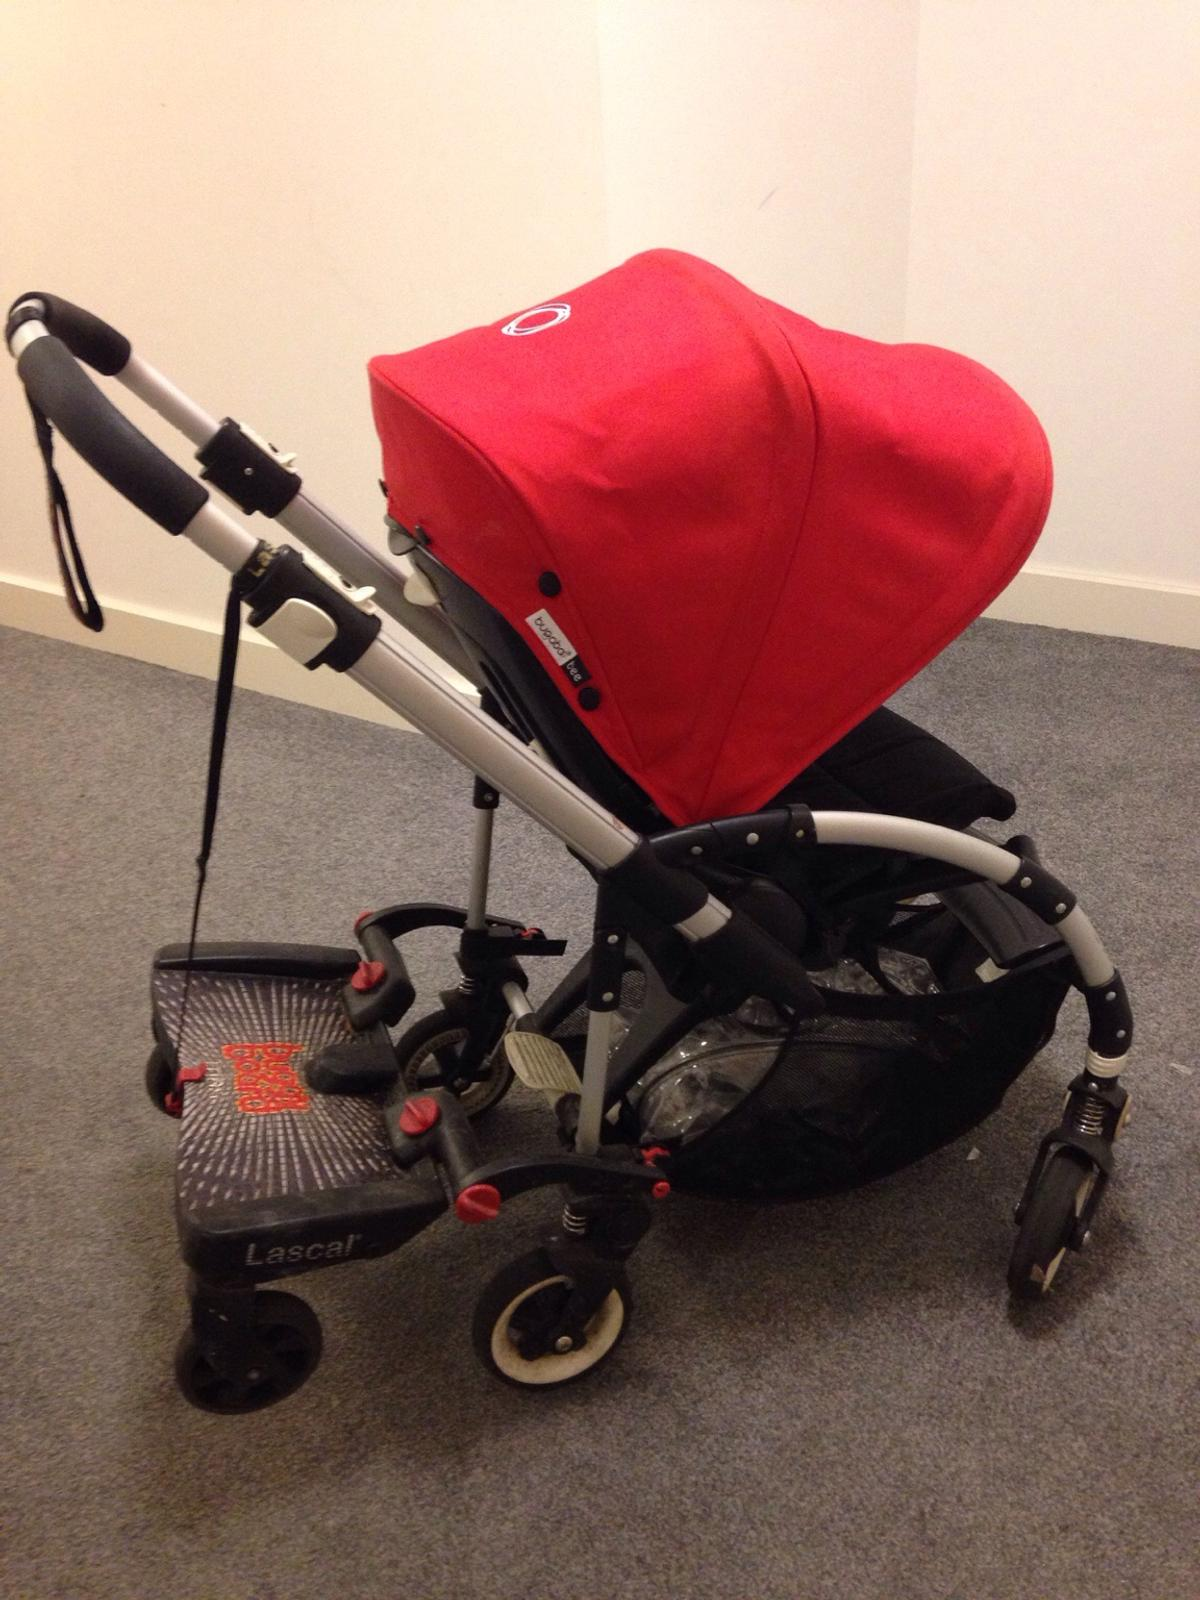 Bugaboo Bee With Buggy Board Bugaboo Bee Stroller With Lascal Buggy Board In E8 London